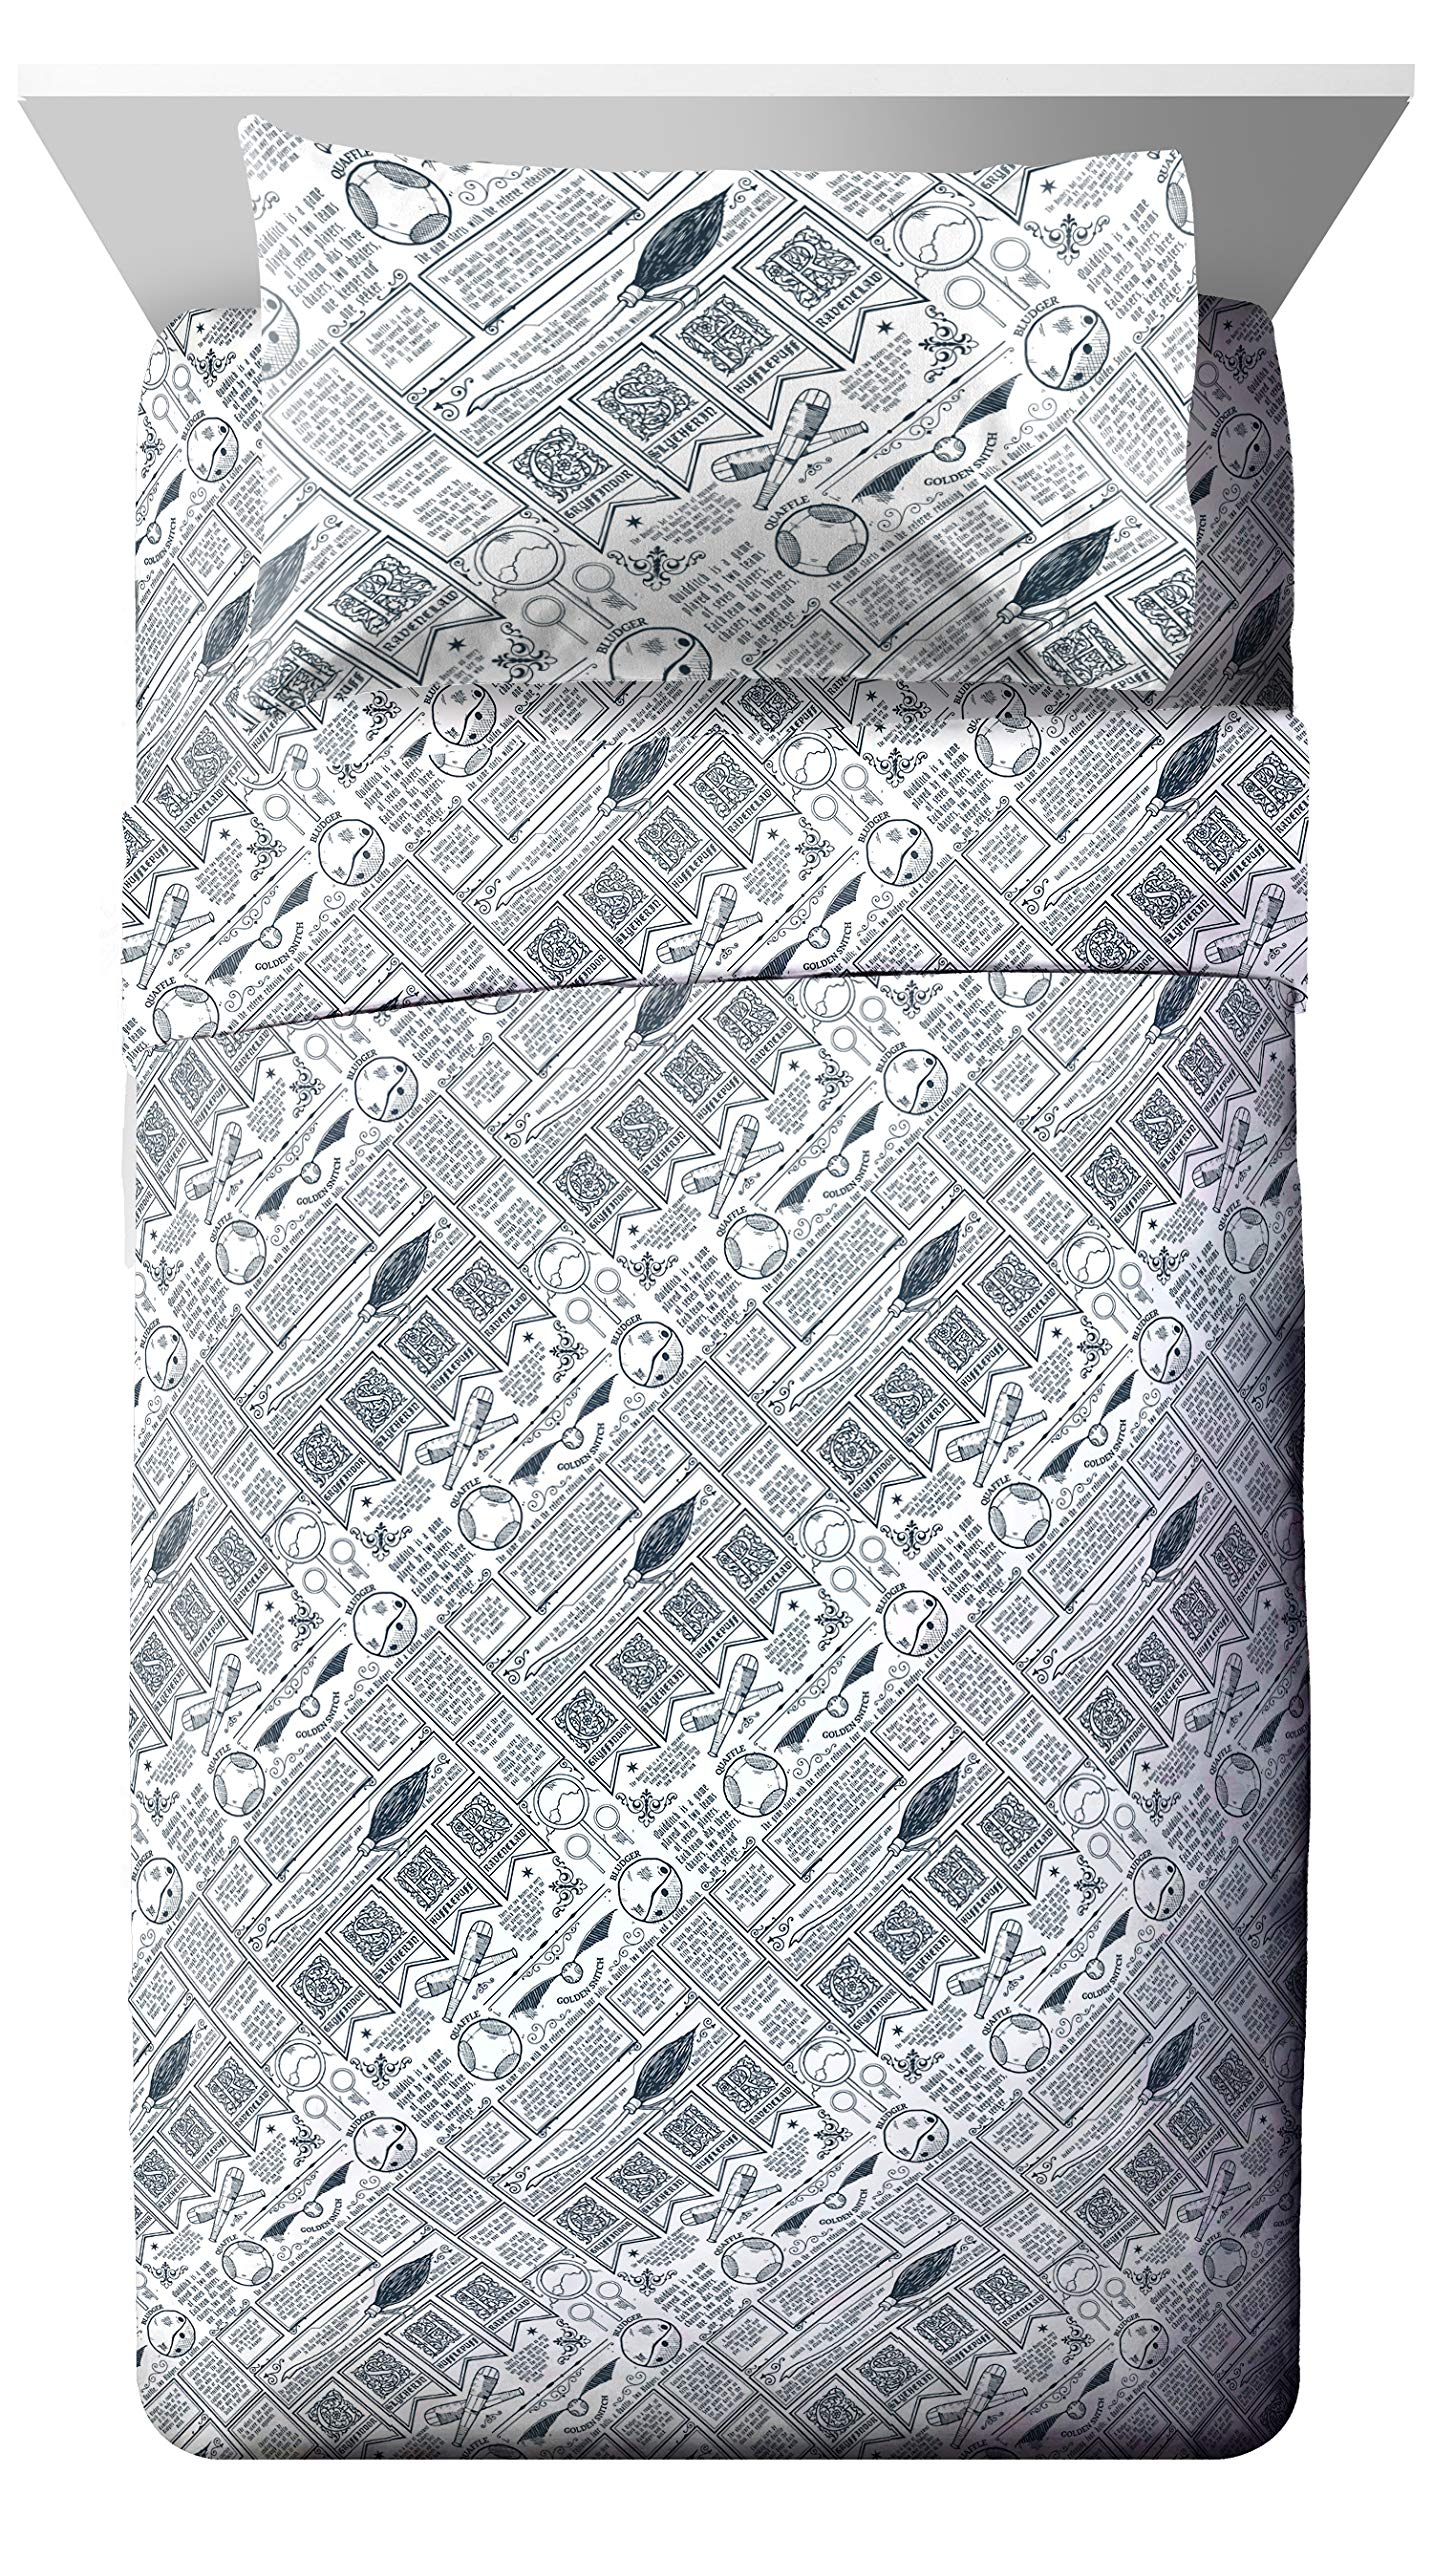 Jay Franco Harry Potter Draco Dormiens Full Sheet Set - 4 Piece Set Super Soft and Cozy Kid's Bedding - Fade Resistant Polyester Microfiber Sheets (Official Harry Potter Product)